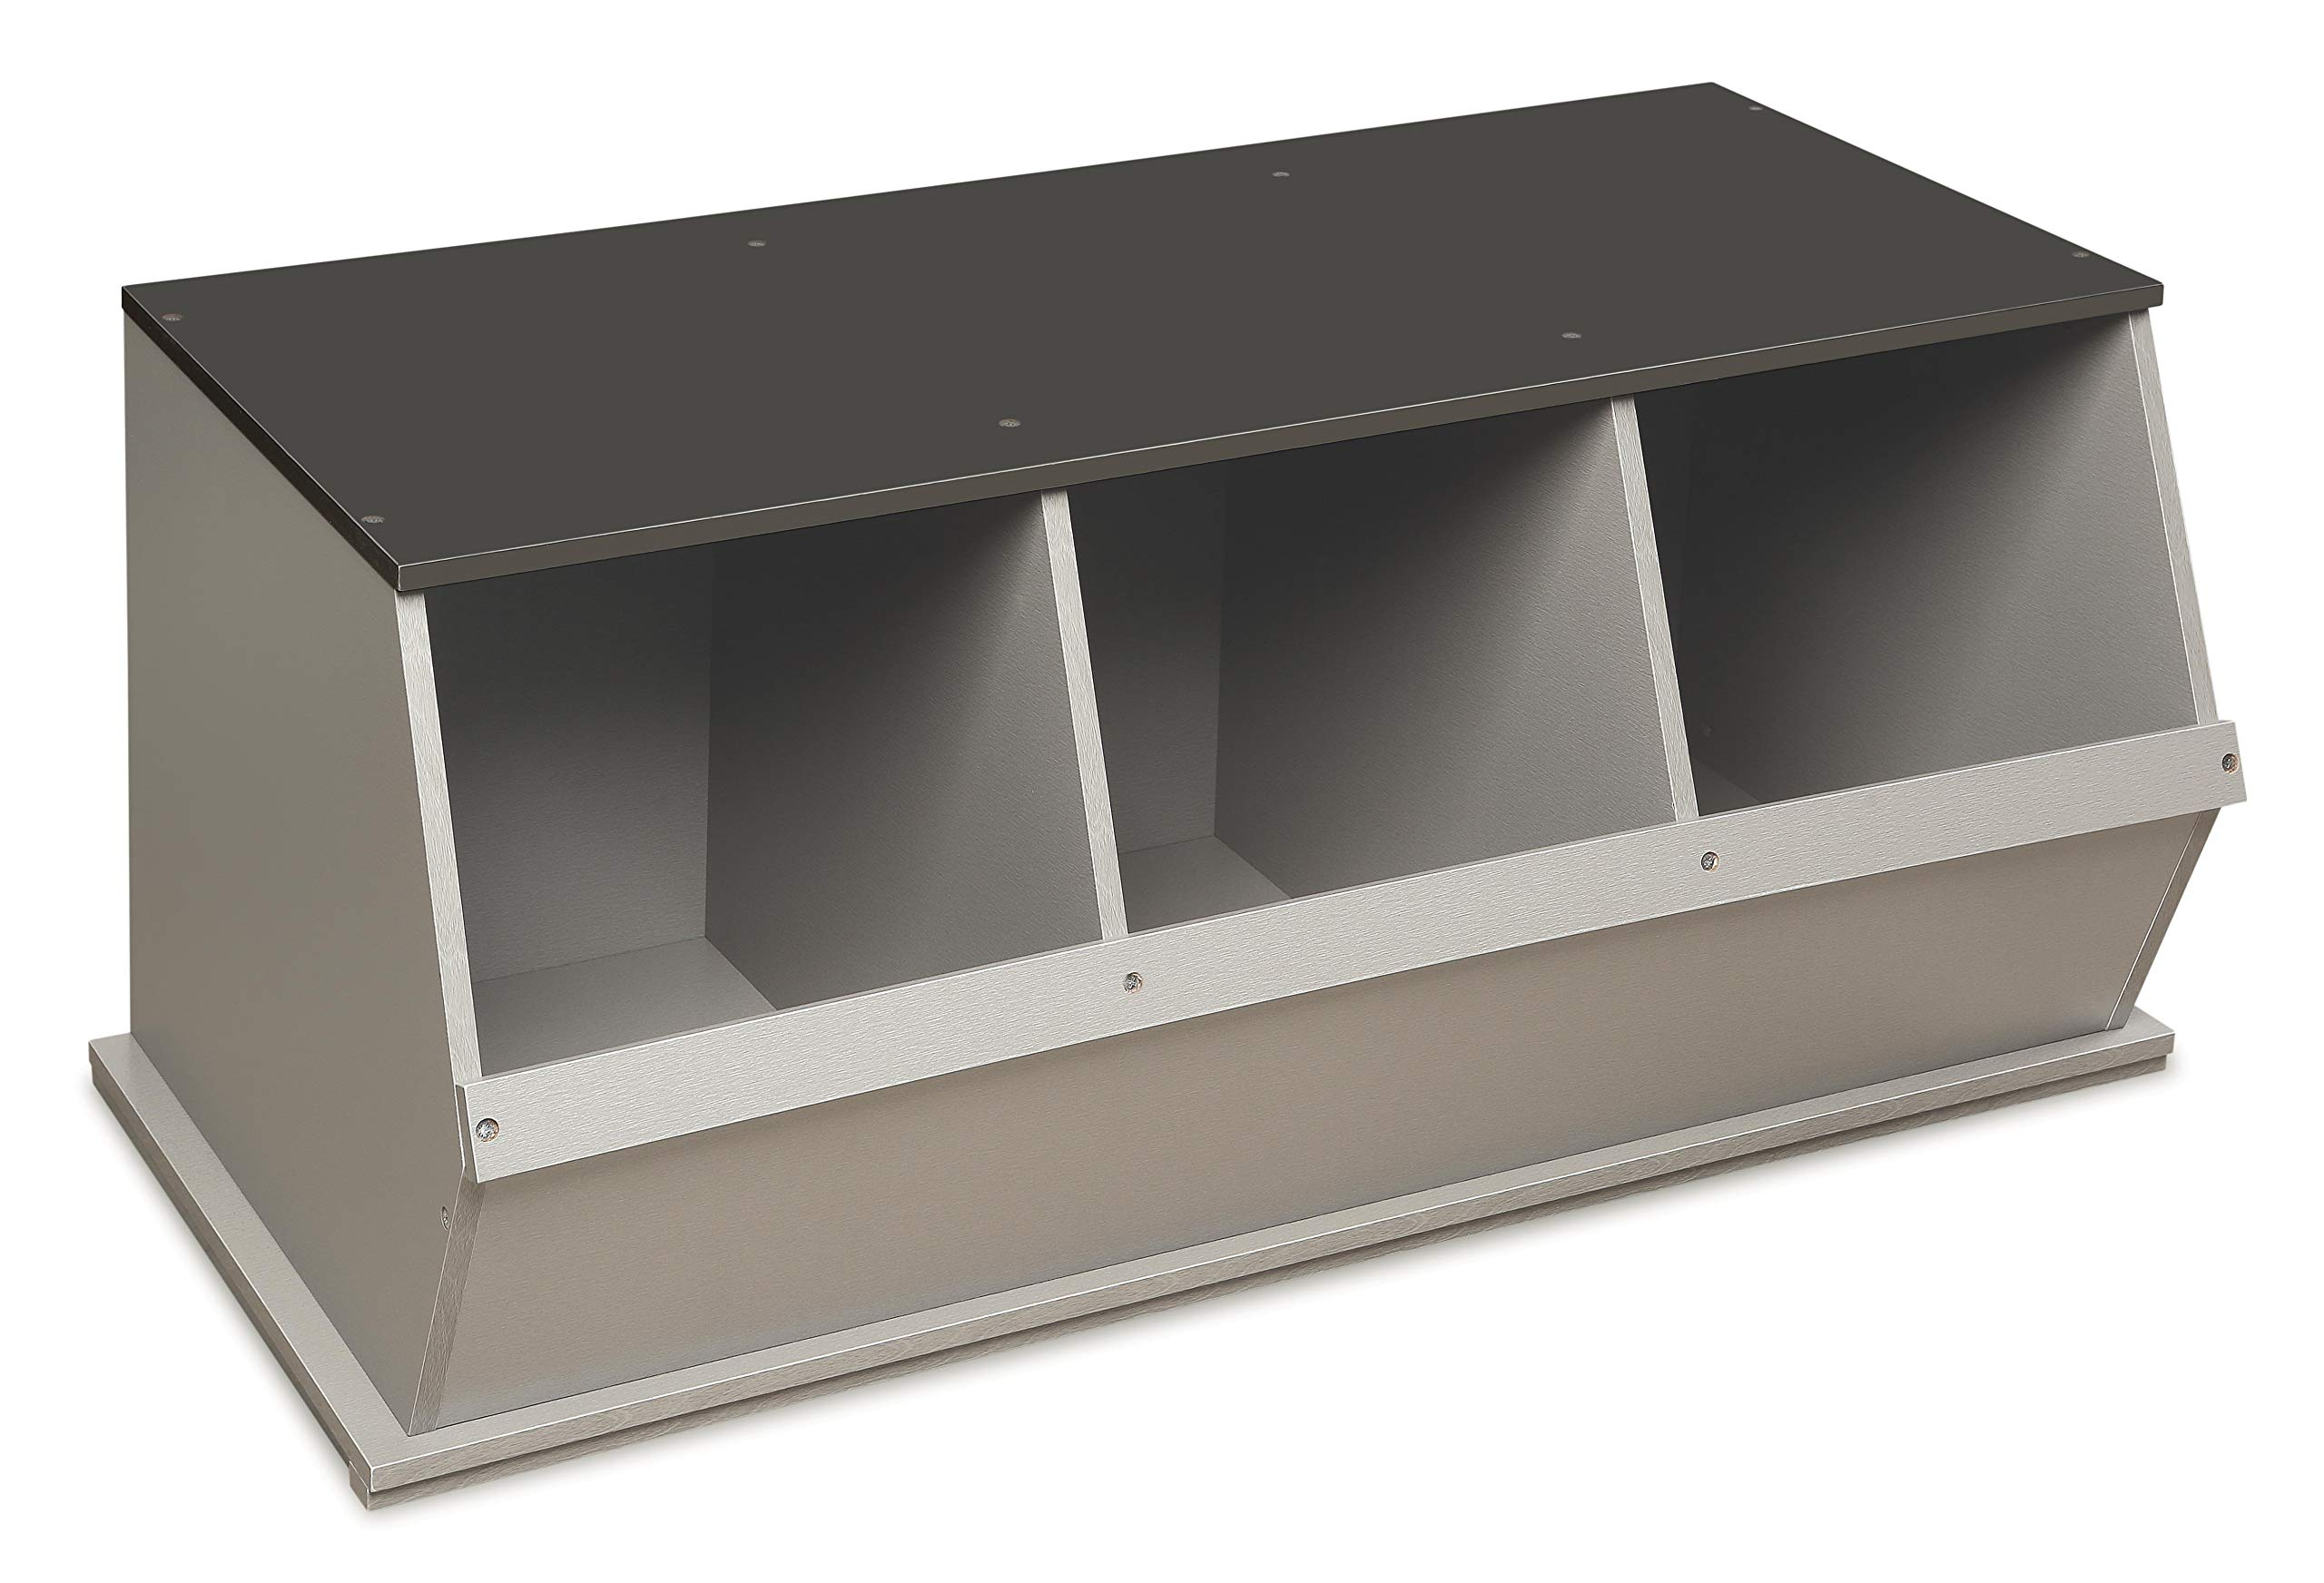 Stackable 3 Bin Open Storage Toy Organizing Cubby